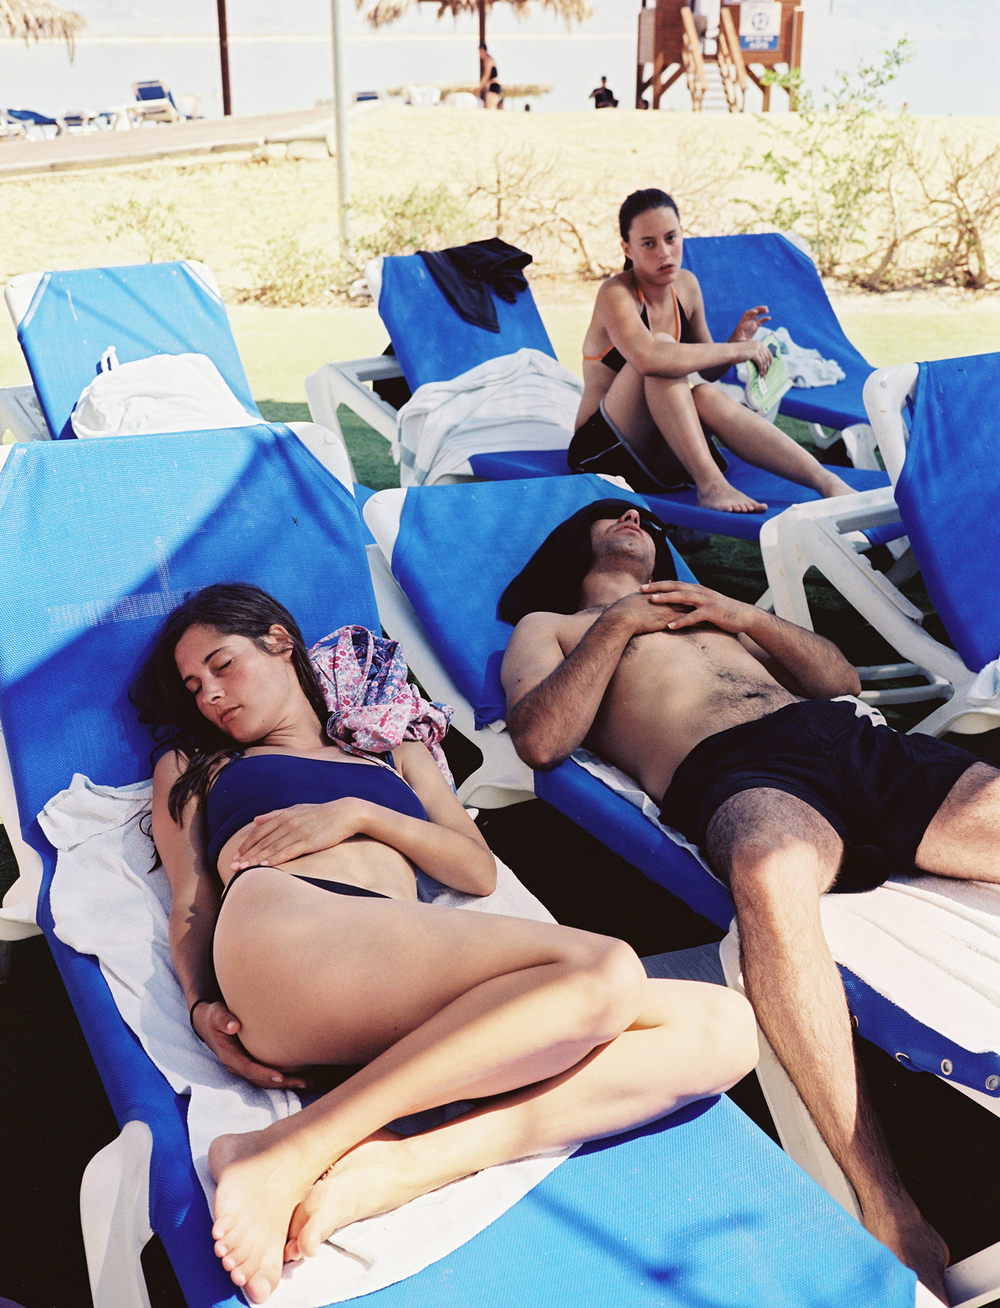 Film photography by Dina Goldstein shot at a Dead Sea resort, Israel. Includes images of sun bathers and people in the Dead Sea ocean.